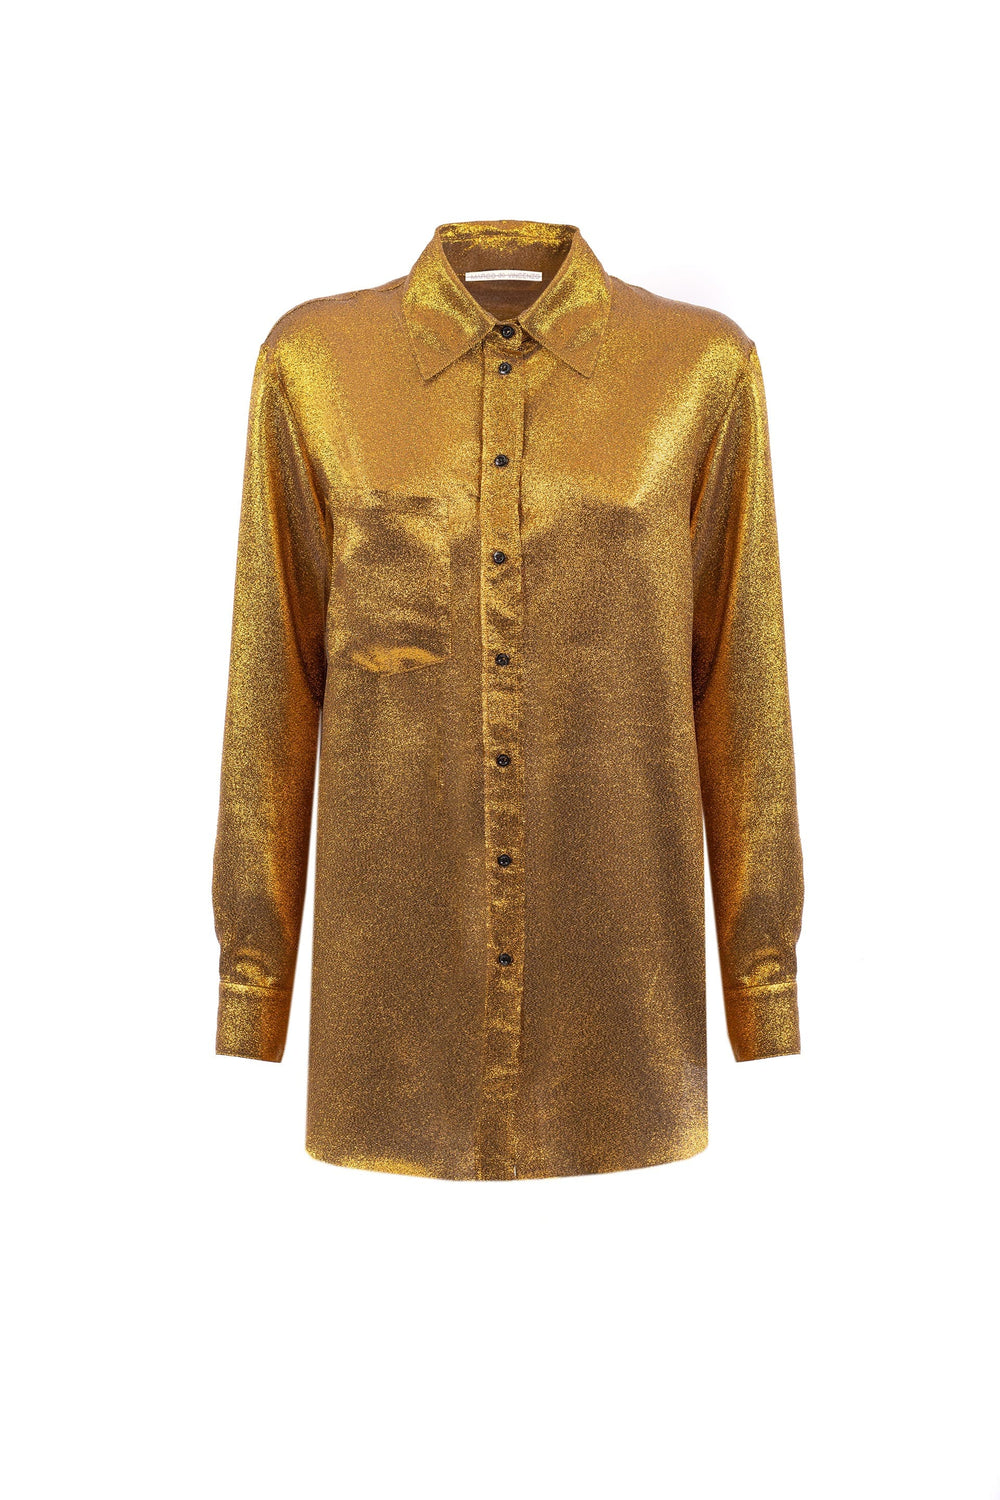 Gold blouse with breast pocket